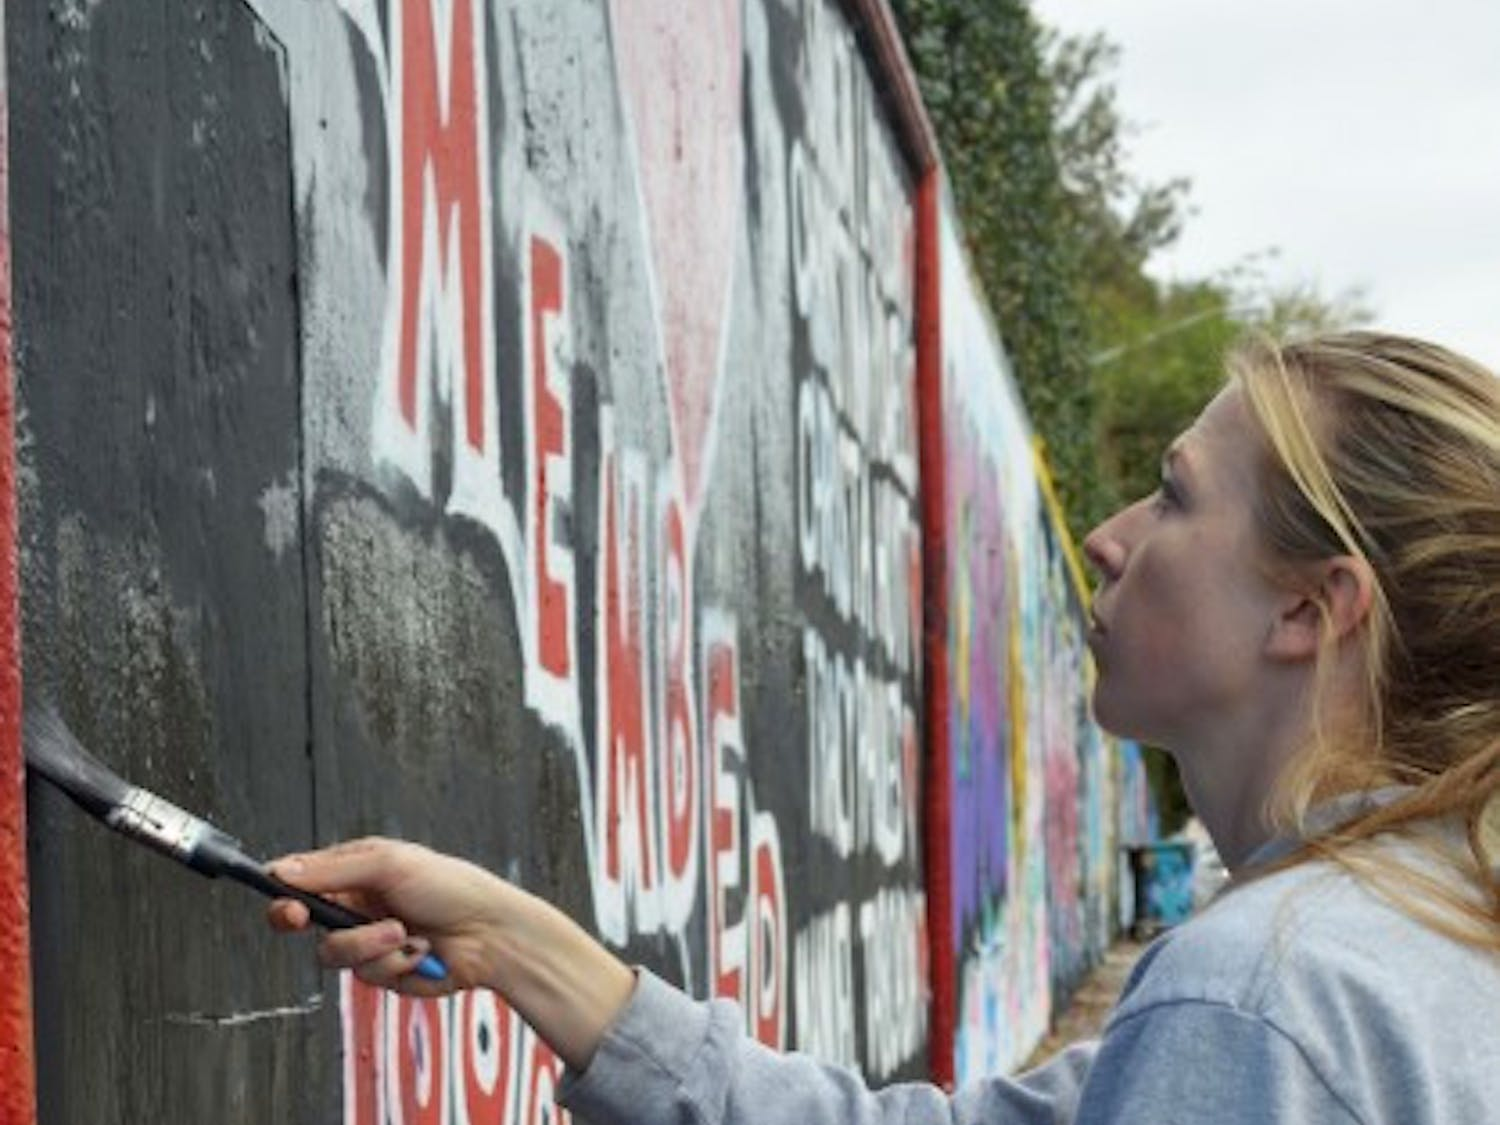 """Brianna Rubel, 25, restores a memorial for the victims of the Danny Rolling murders on the 34th Street Wall. She decided to help another artist paint over hateful comments in the """"remember"""" section Tuesday."""